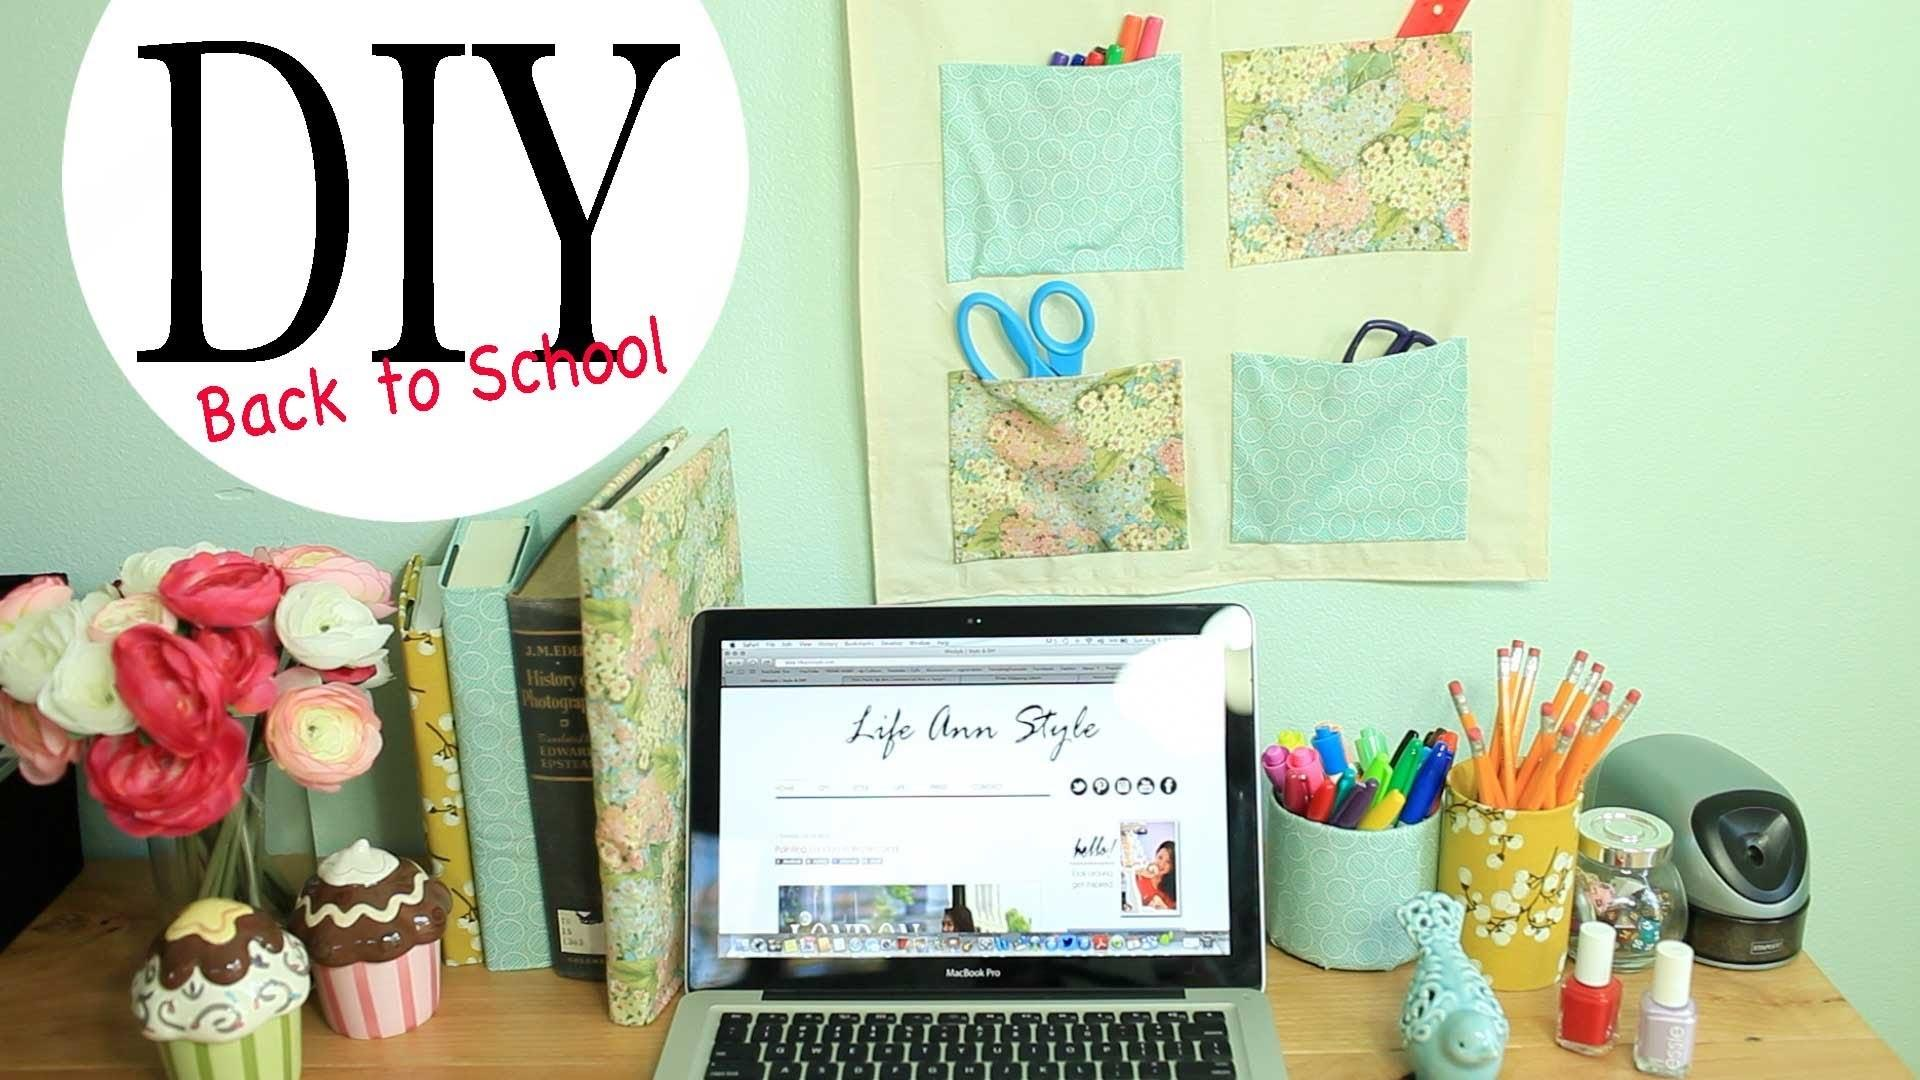 Diy Wall Organizer Desk Accessories Back School Ideas